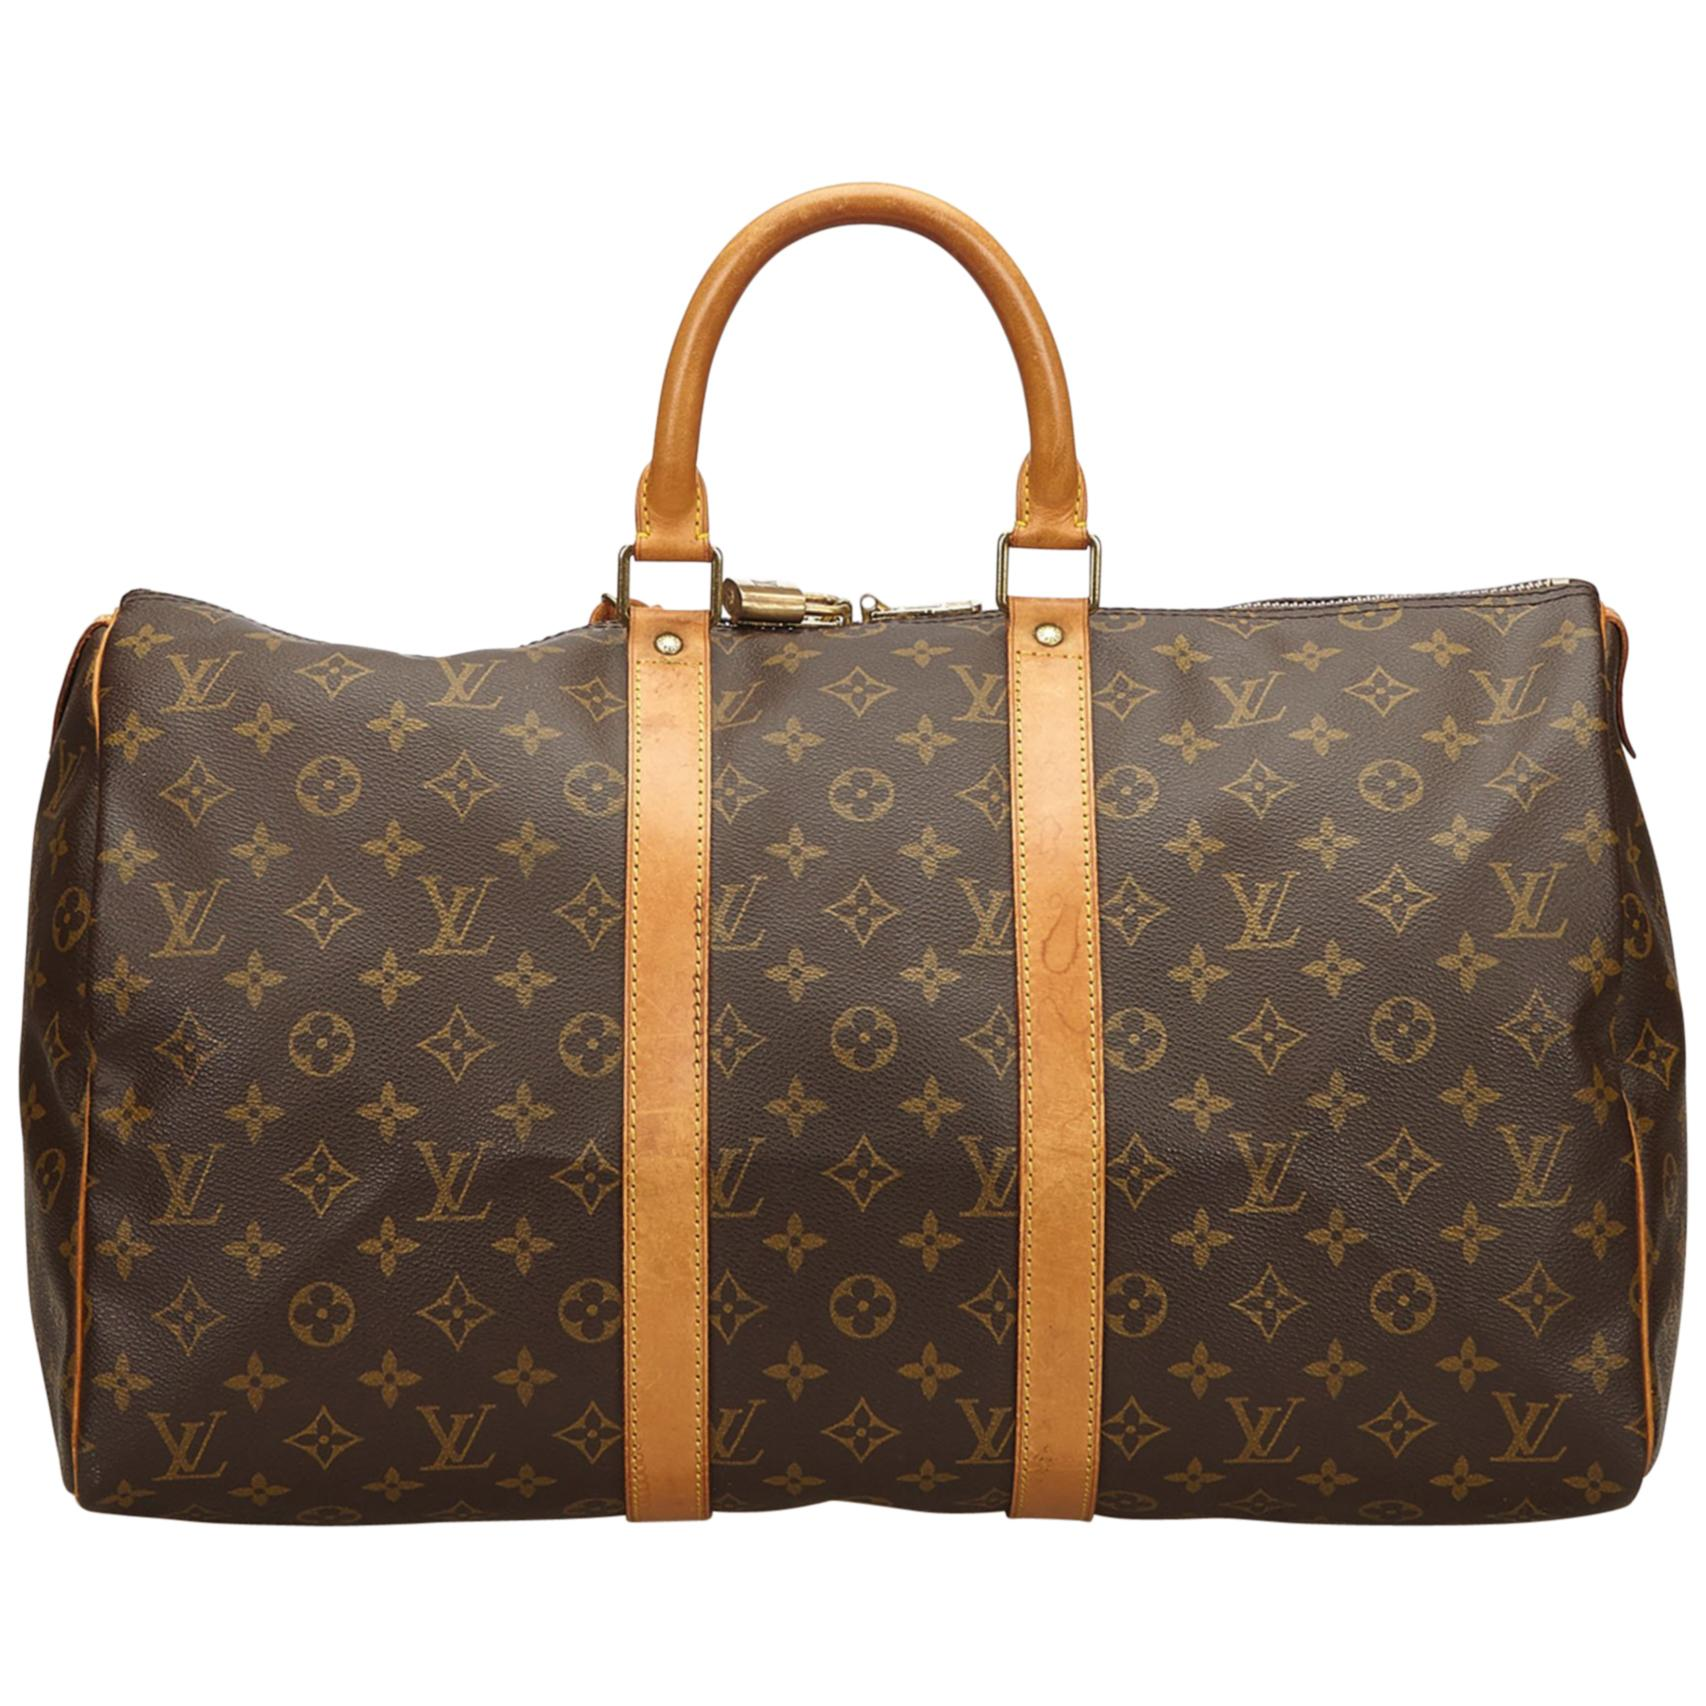 Vintage Louis Vuitton Luggage and Travel Bags - 323 For Sale at 1stdibs -  Page 4 5423aeb38082a